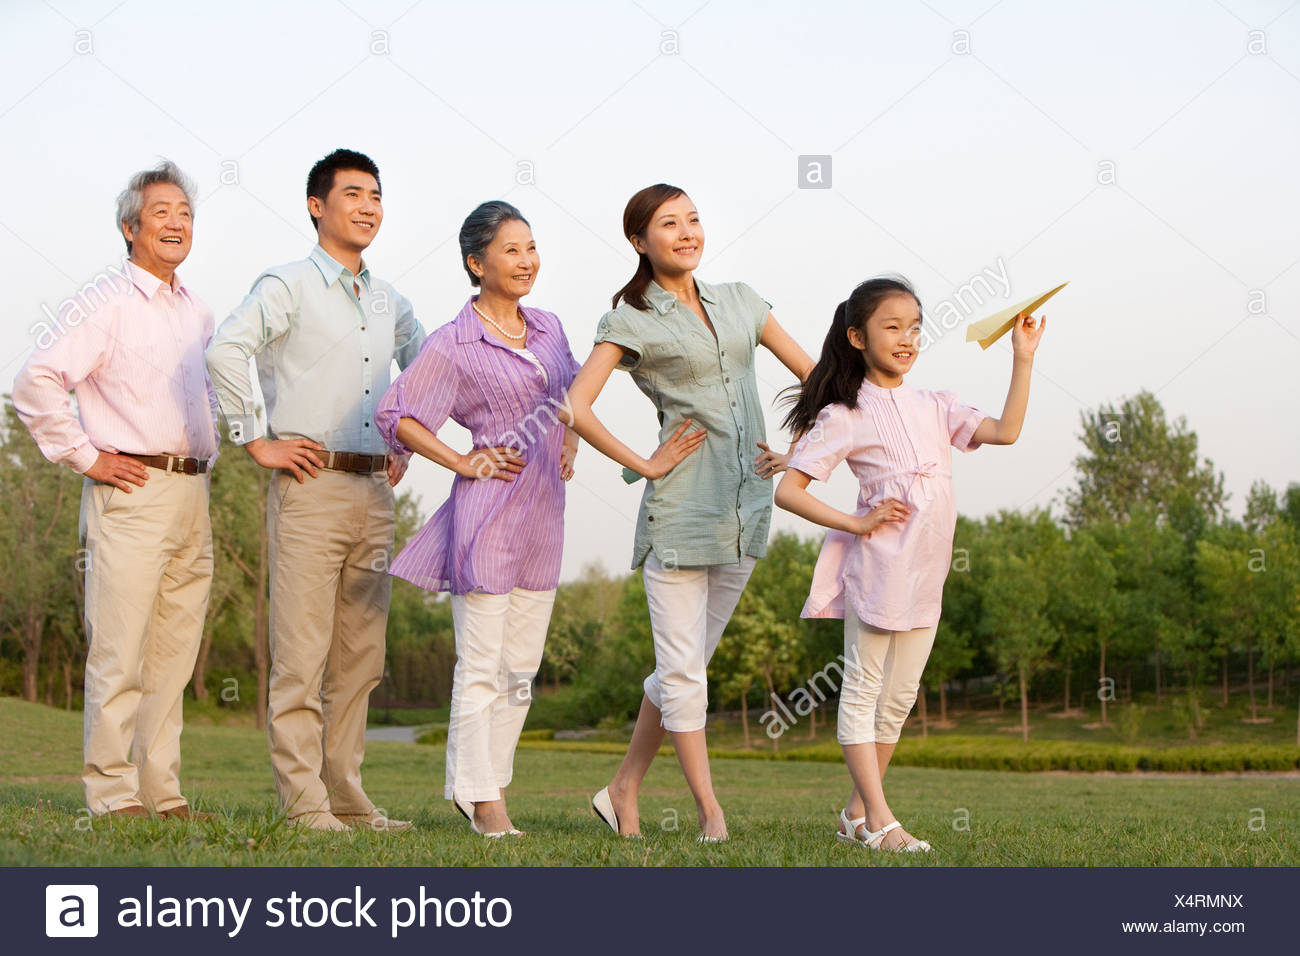 Family at the Park Together - Stock Image